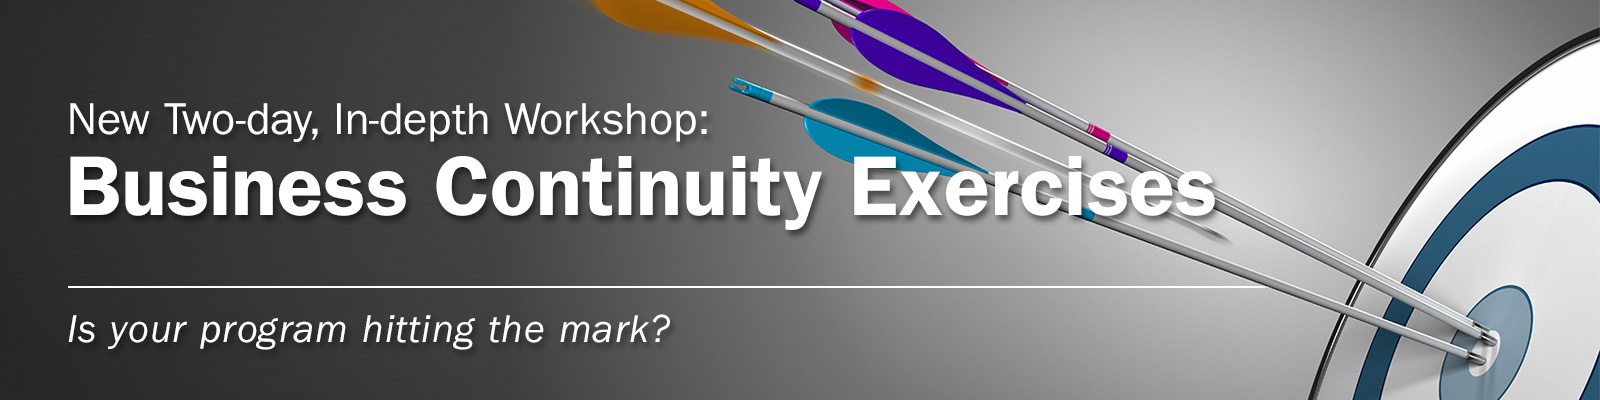 New Workshop: Business Continuity Exercises